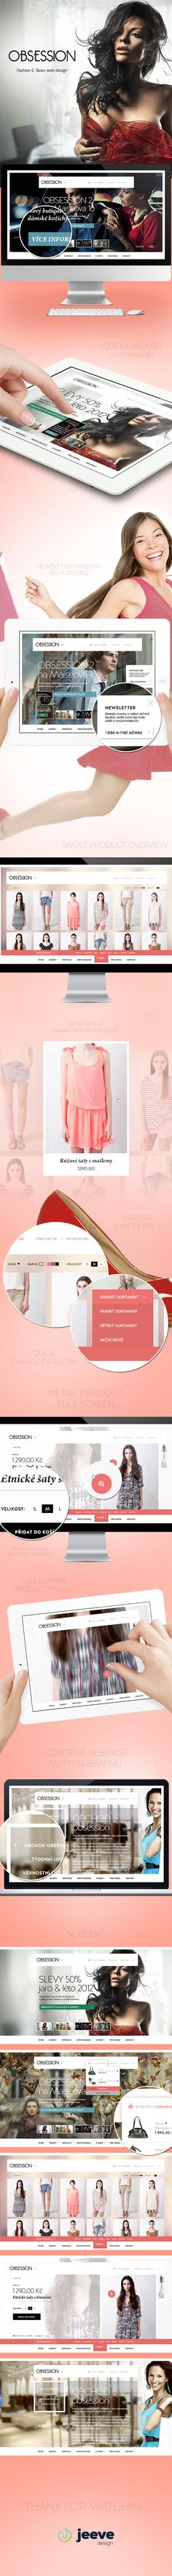 Obsession - Fashion E-Store web design by Jan Vašek, via Behance